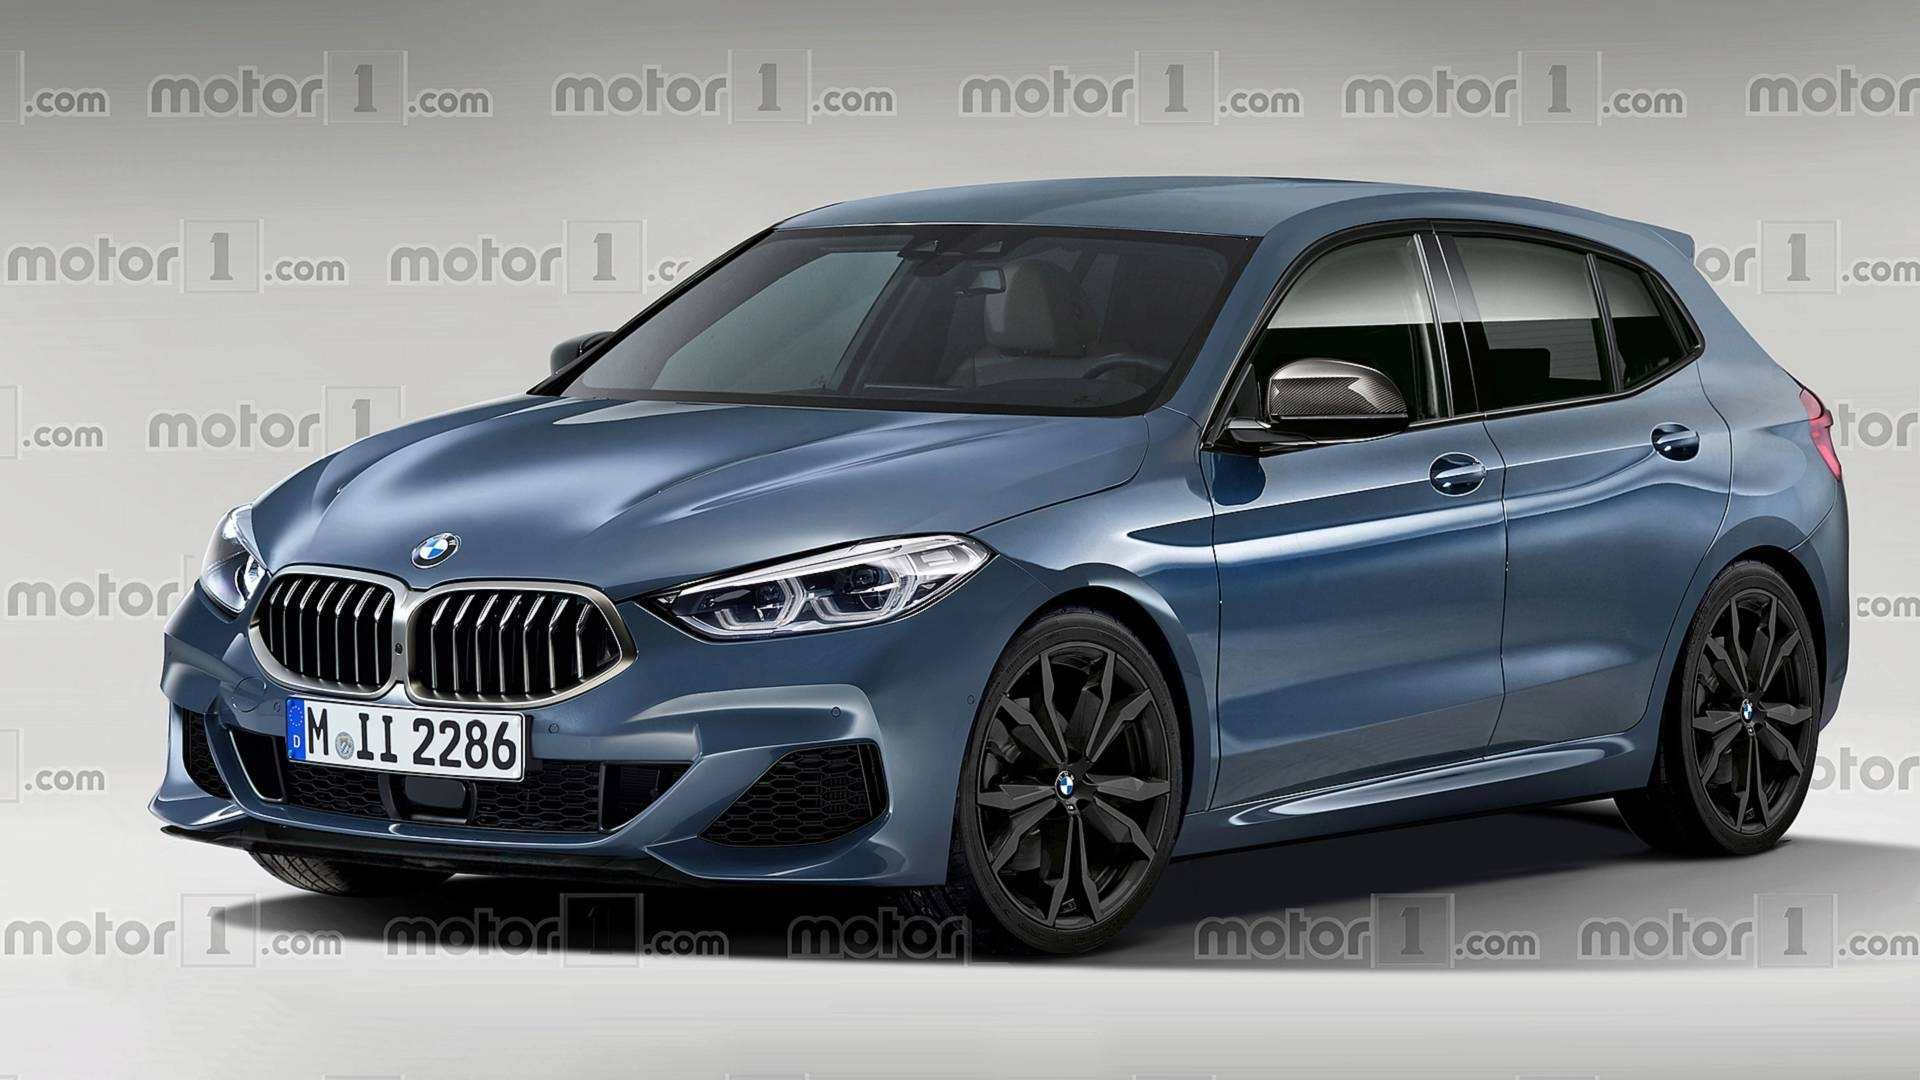 80 Best Review The The New Bmw 1 Series 2019 Price History with The The New Bmw 1 Series 2019 Price